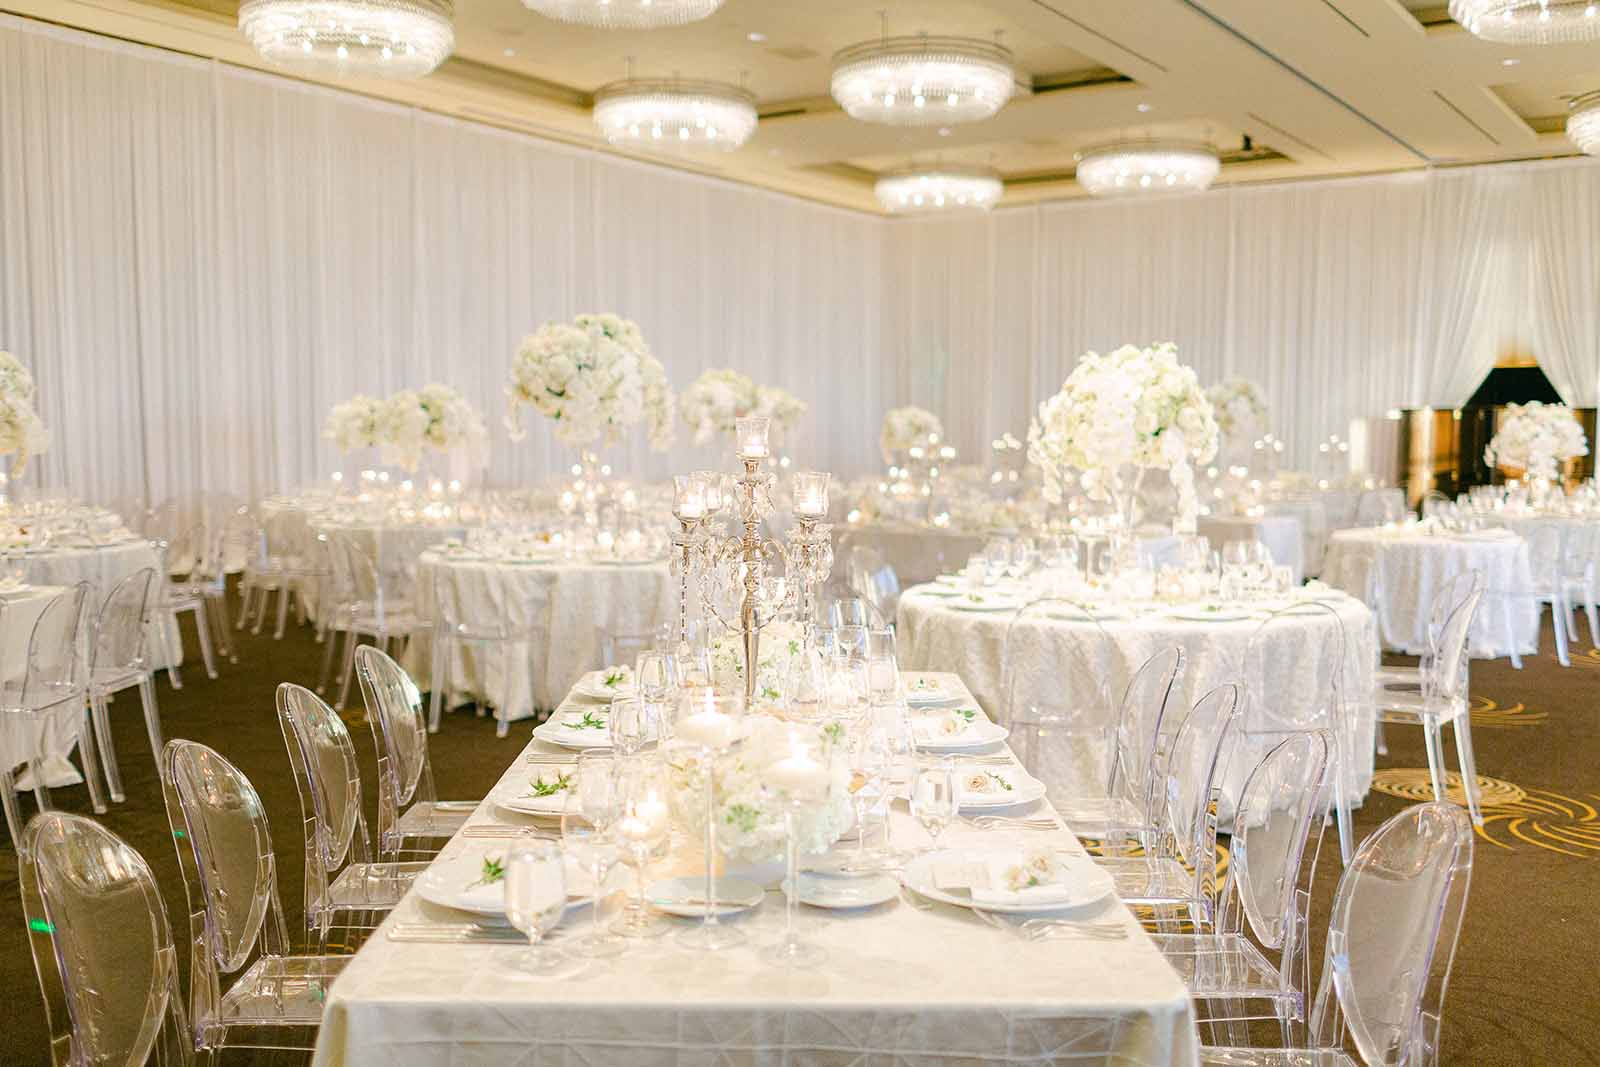 Formal Four Seasons Seattle ballroom white orchid wedding reception, mix of round and rectangle tables with lucite ghost chairs